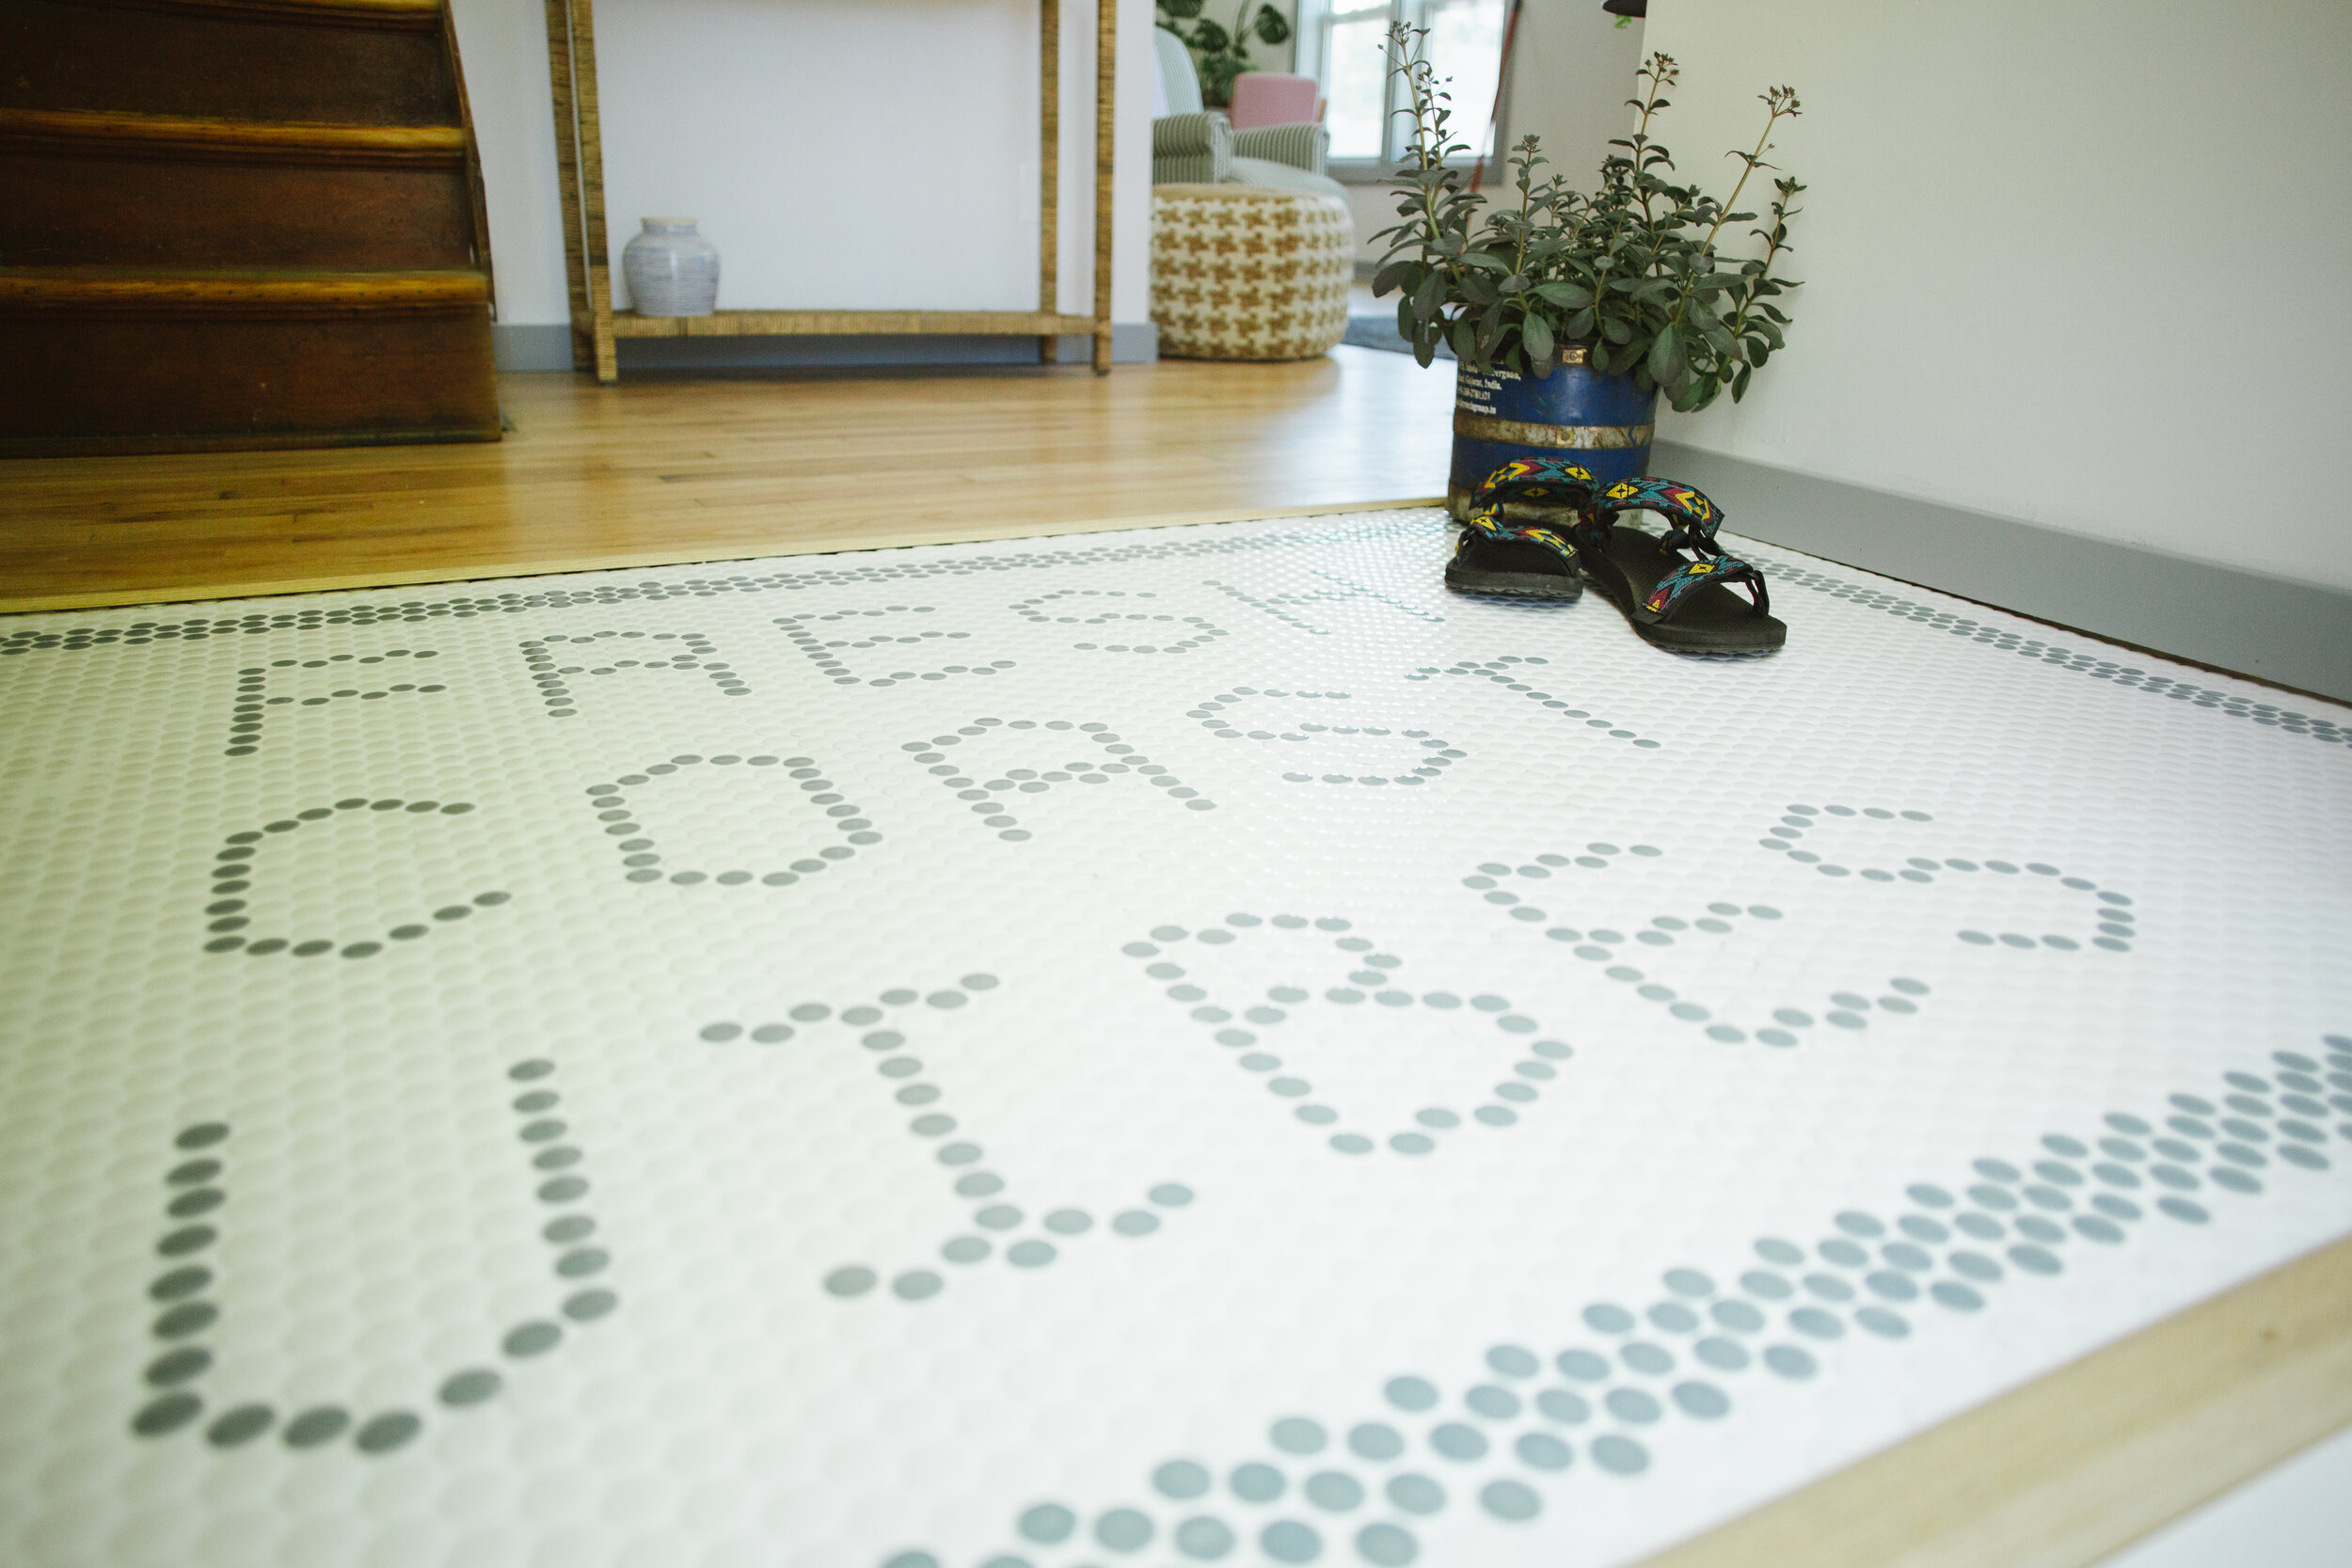 Typography in tile work